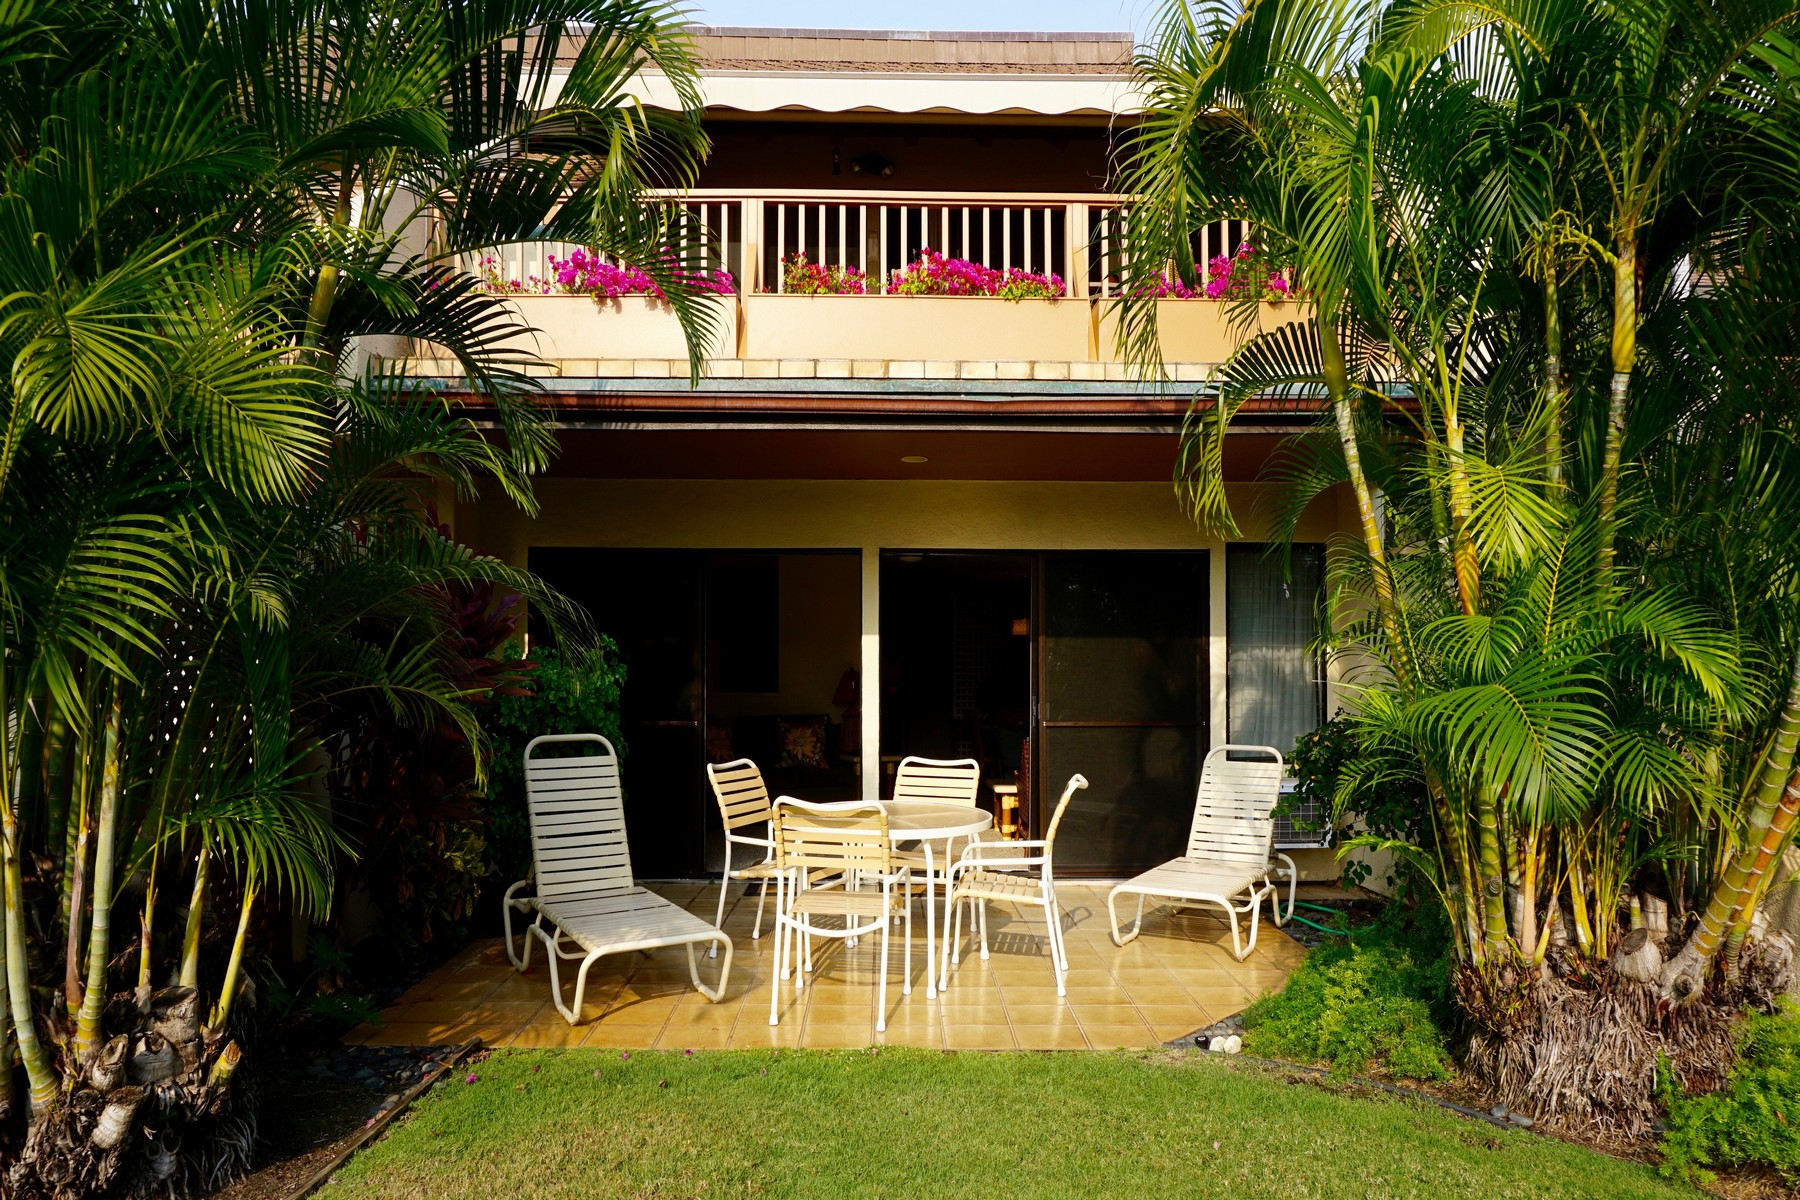 Property For Sale at South Maui Ocean View, Across From the Beach Condominium